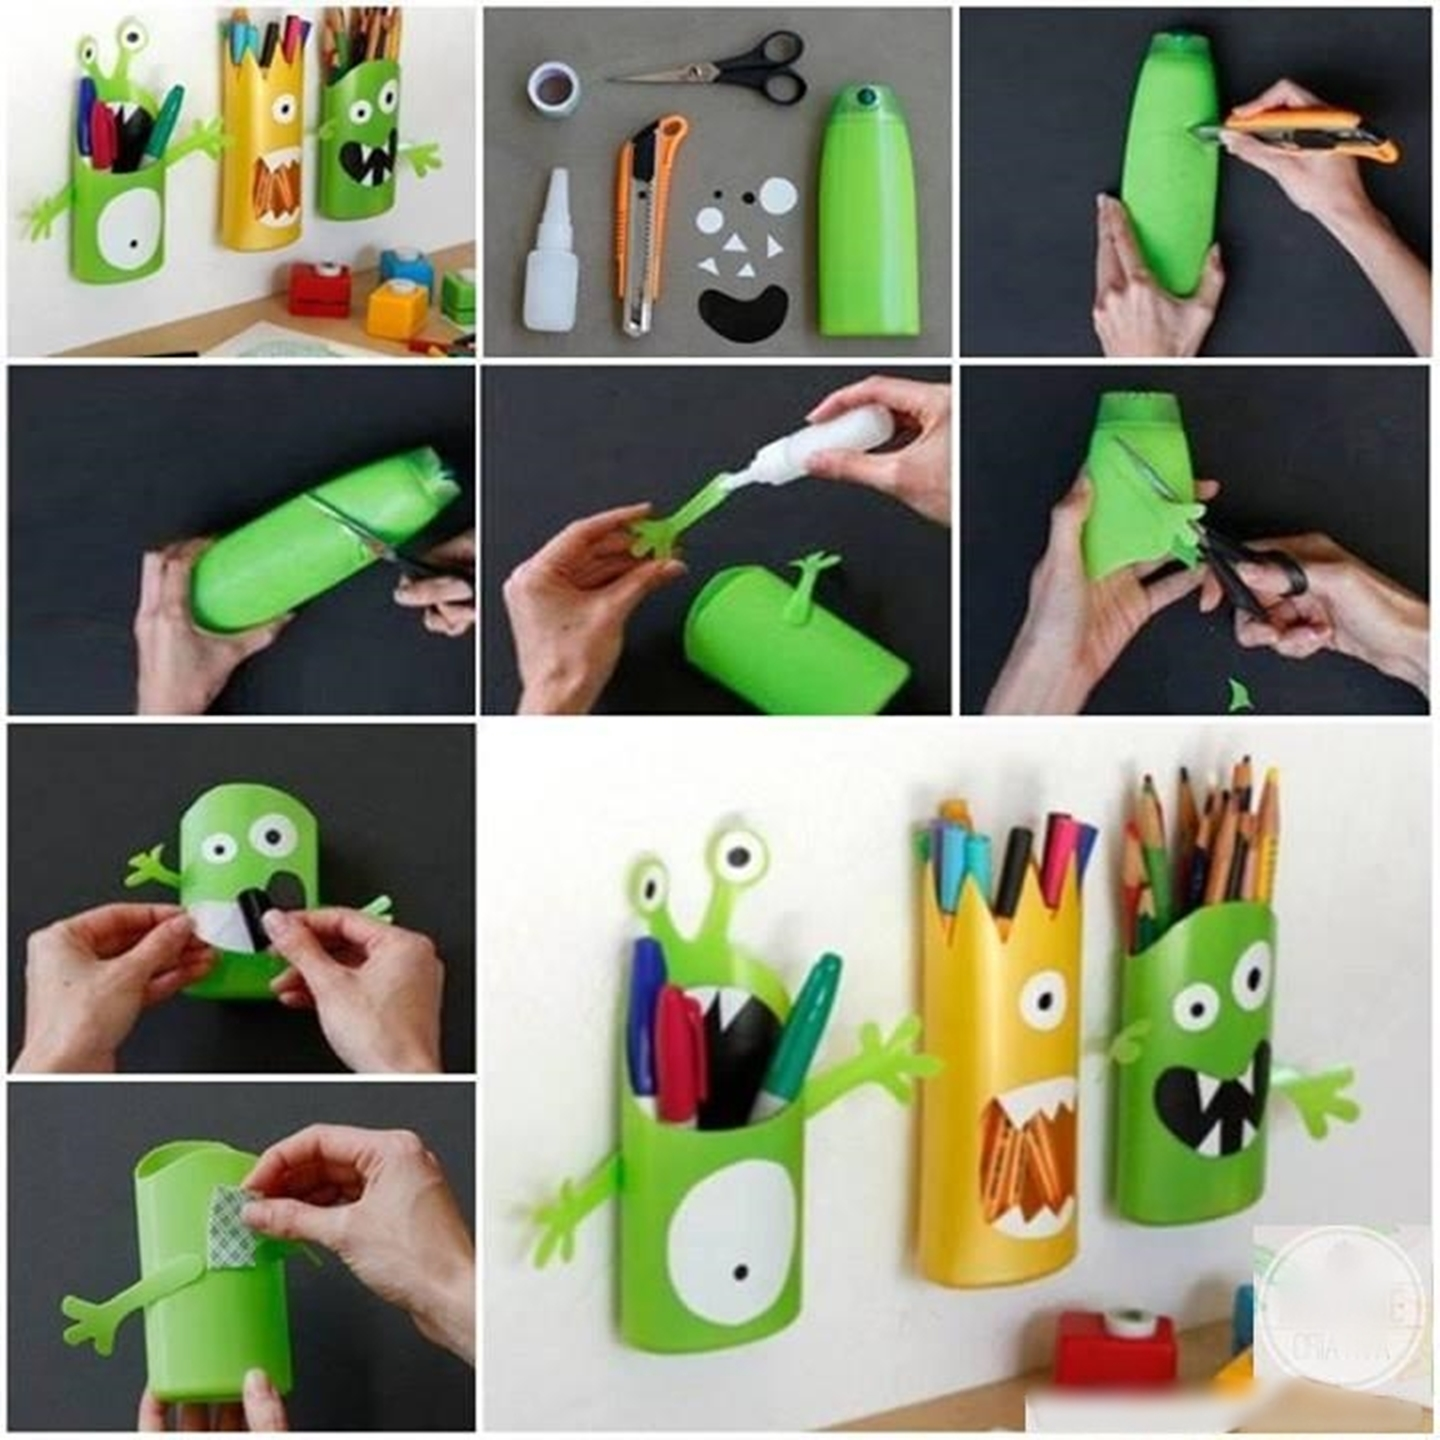 Homemade Pencil Holders Wonderful Diy Monster Pencil Holders From Shampoo Bottles